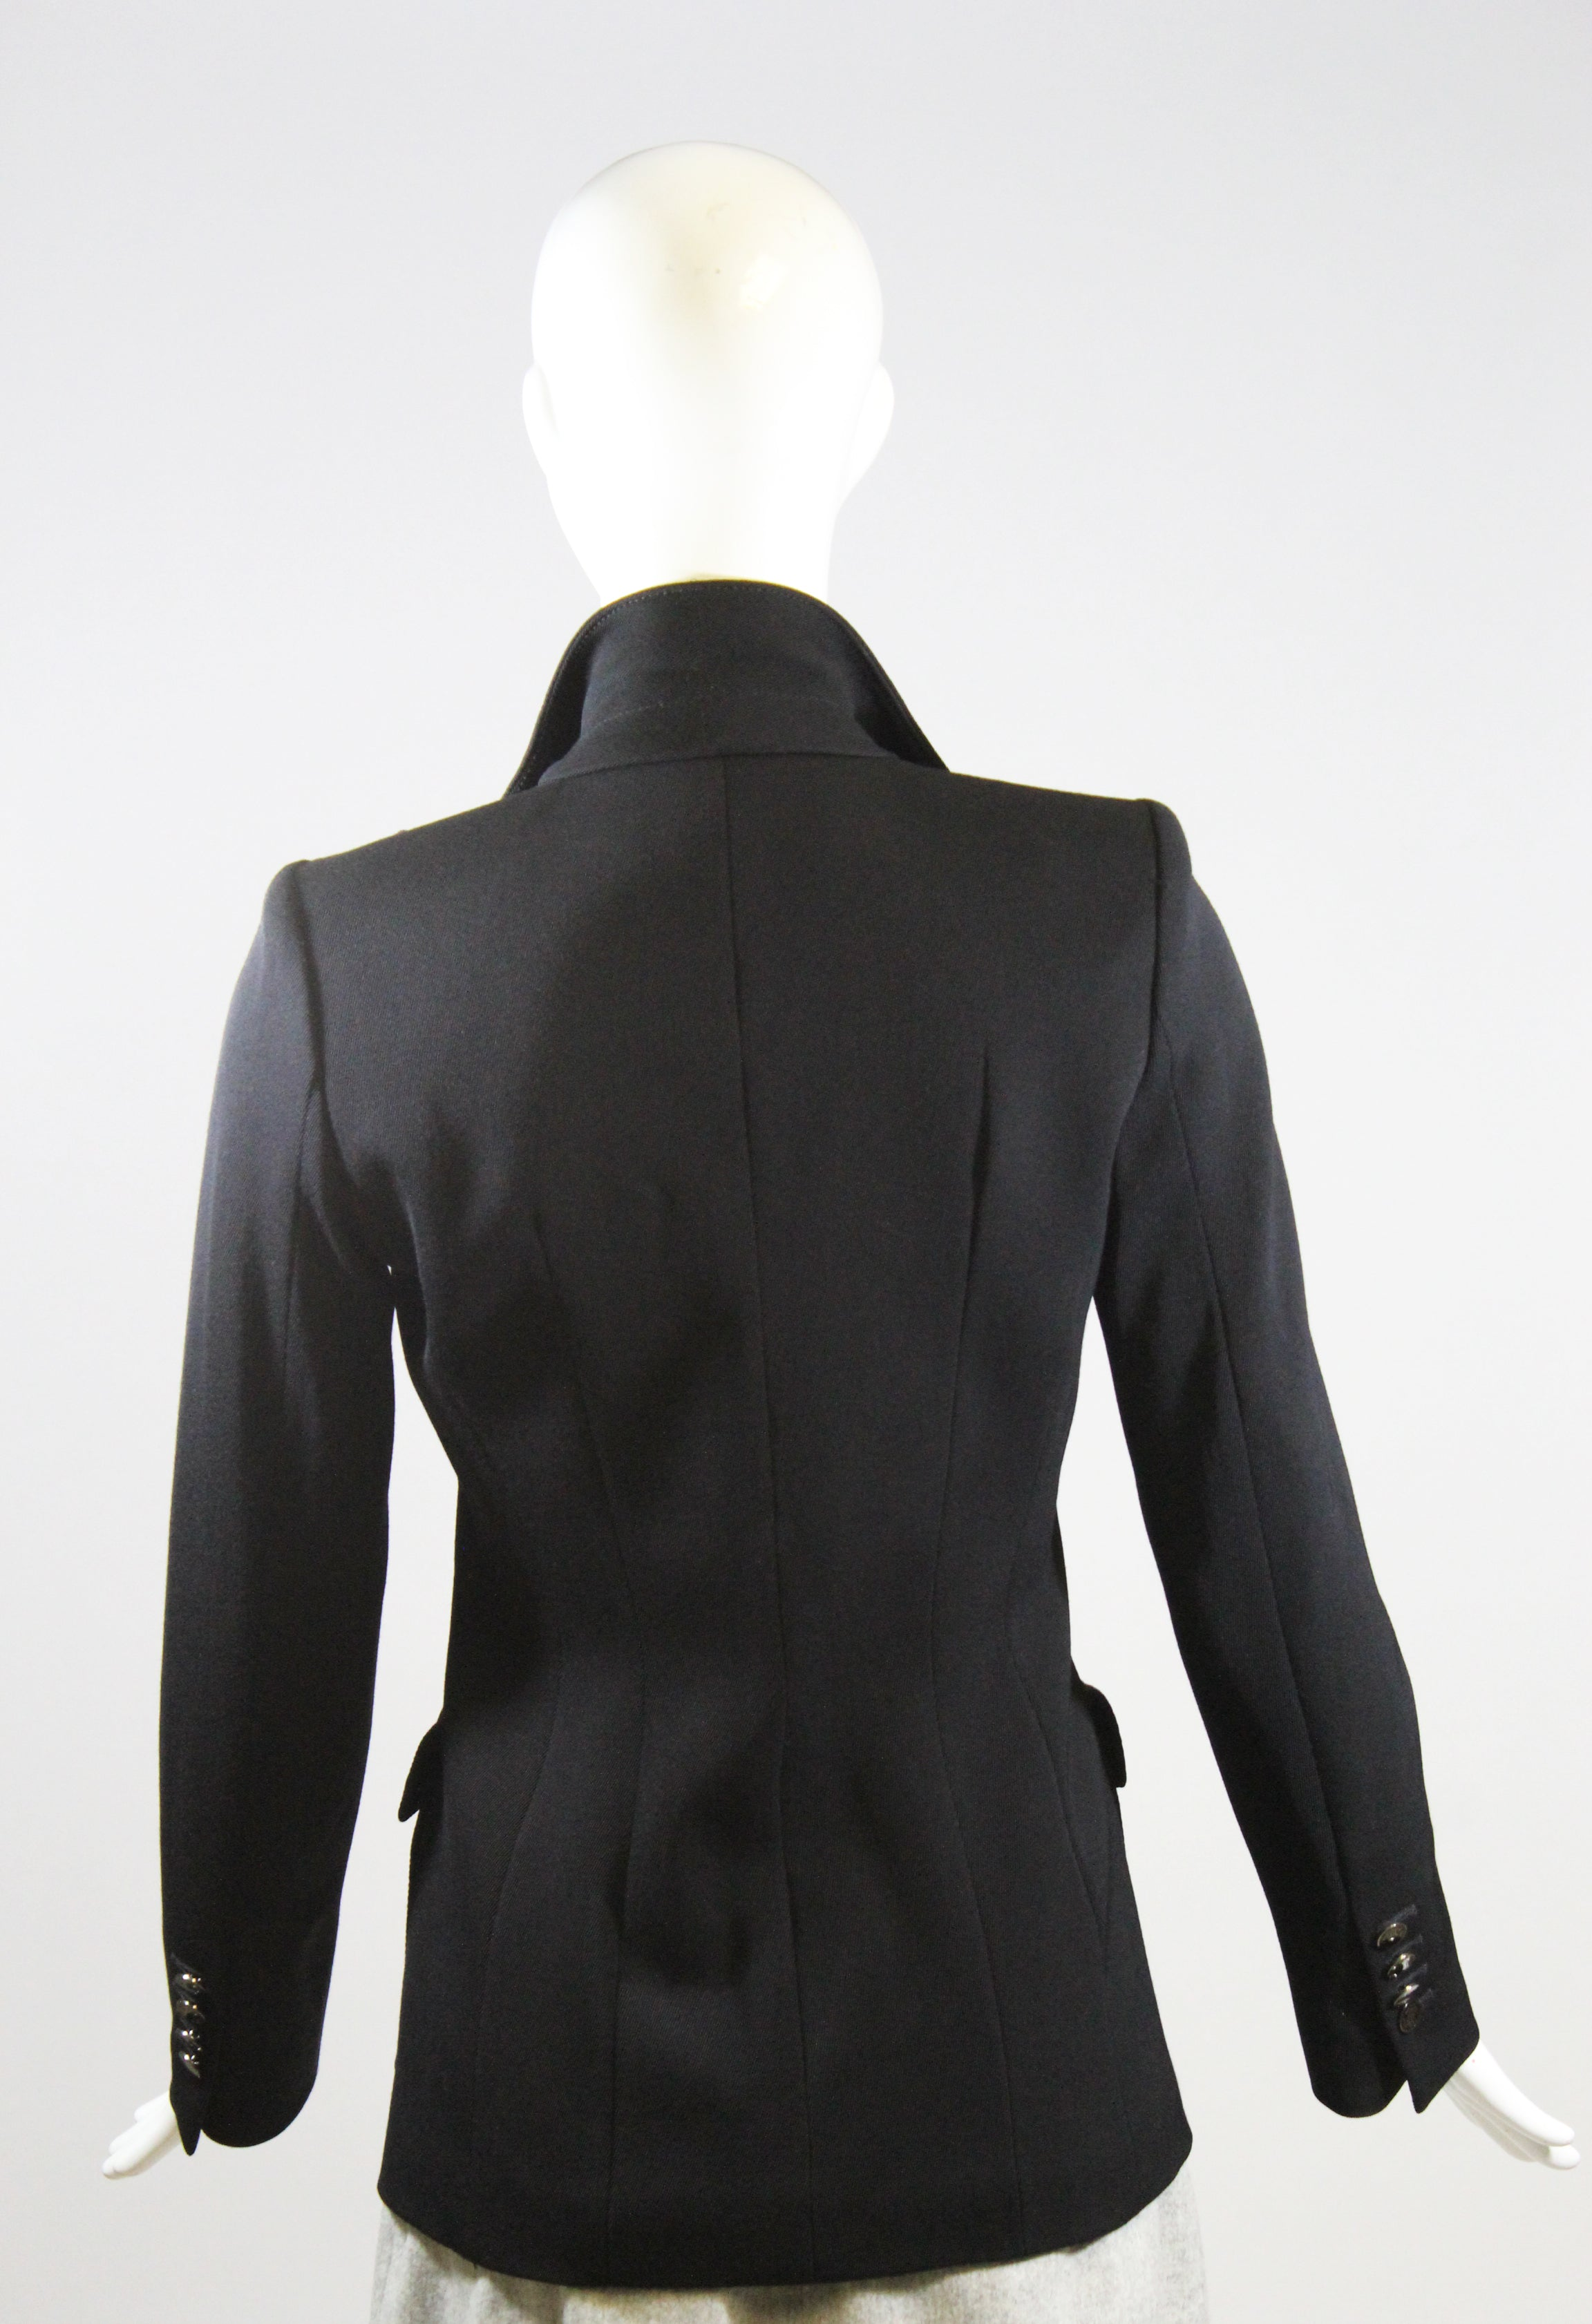 ROBERTO CAVALLI Black Wool Notched Lapel Button Flap Pocket Blazer Jacket IT 38